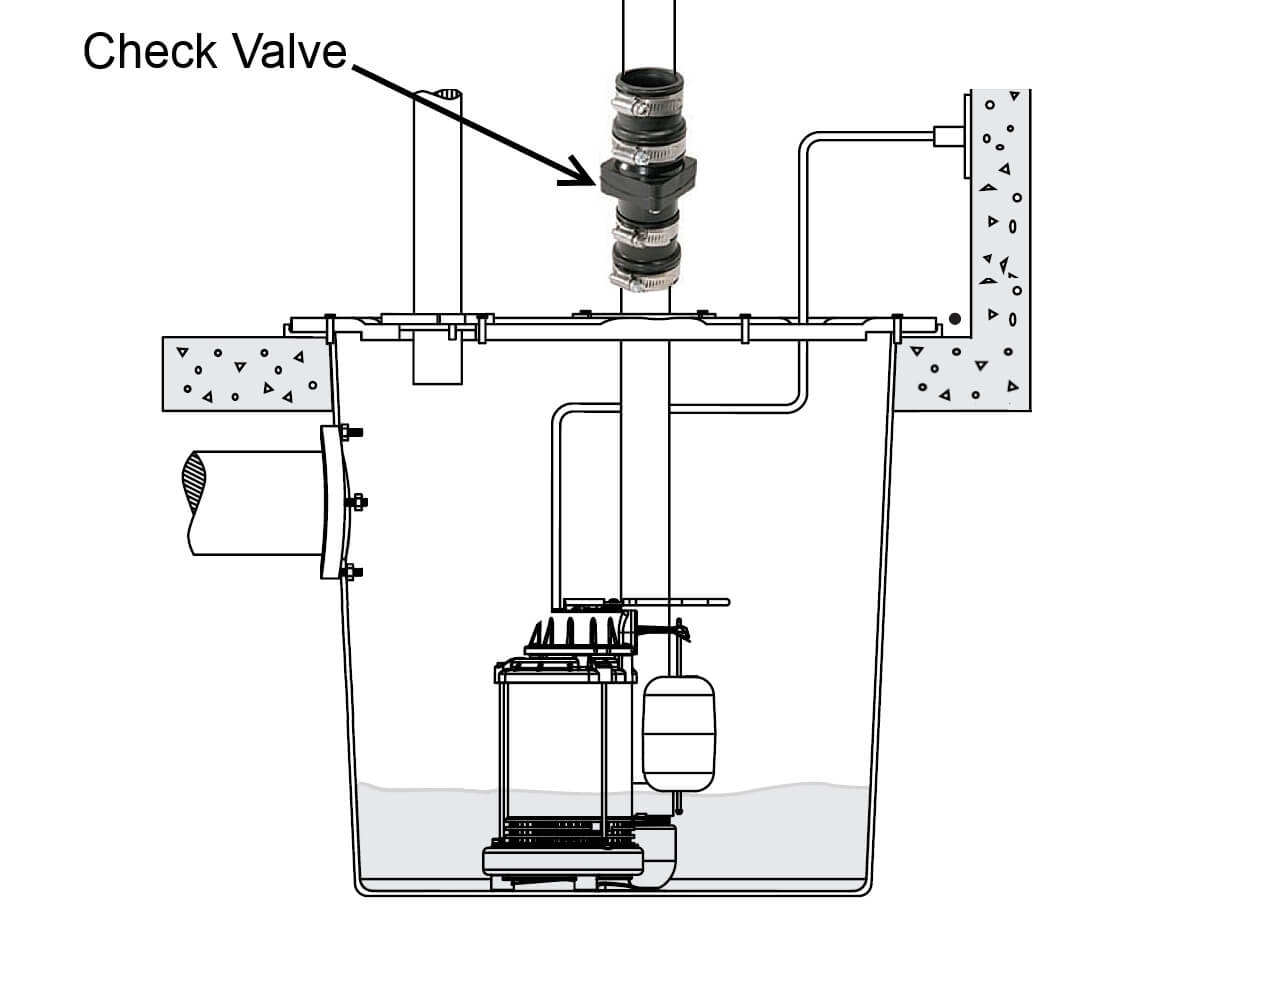 five common sump system defects a check valve should be installed on the discharge pipe to prevent water in the discharge tubing from dumping back in to the sump basket after the pump